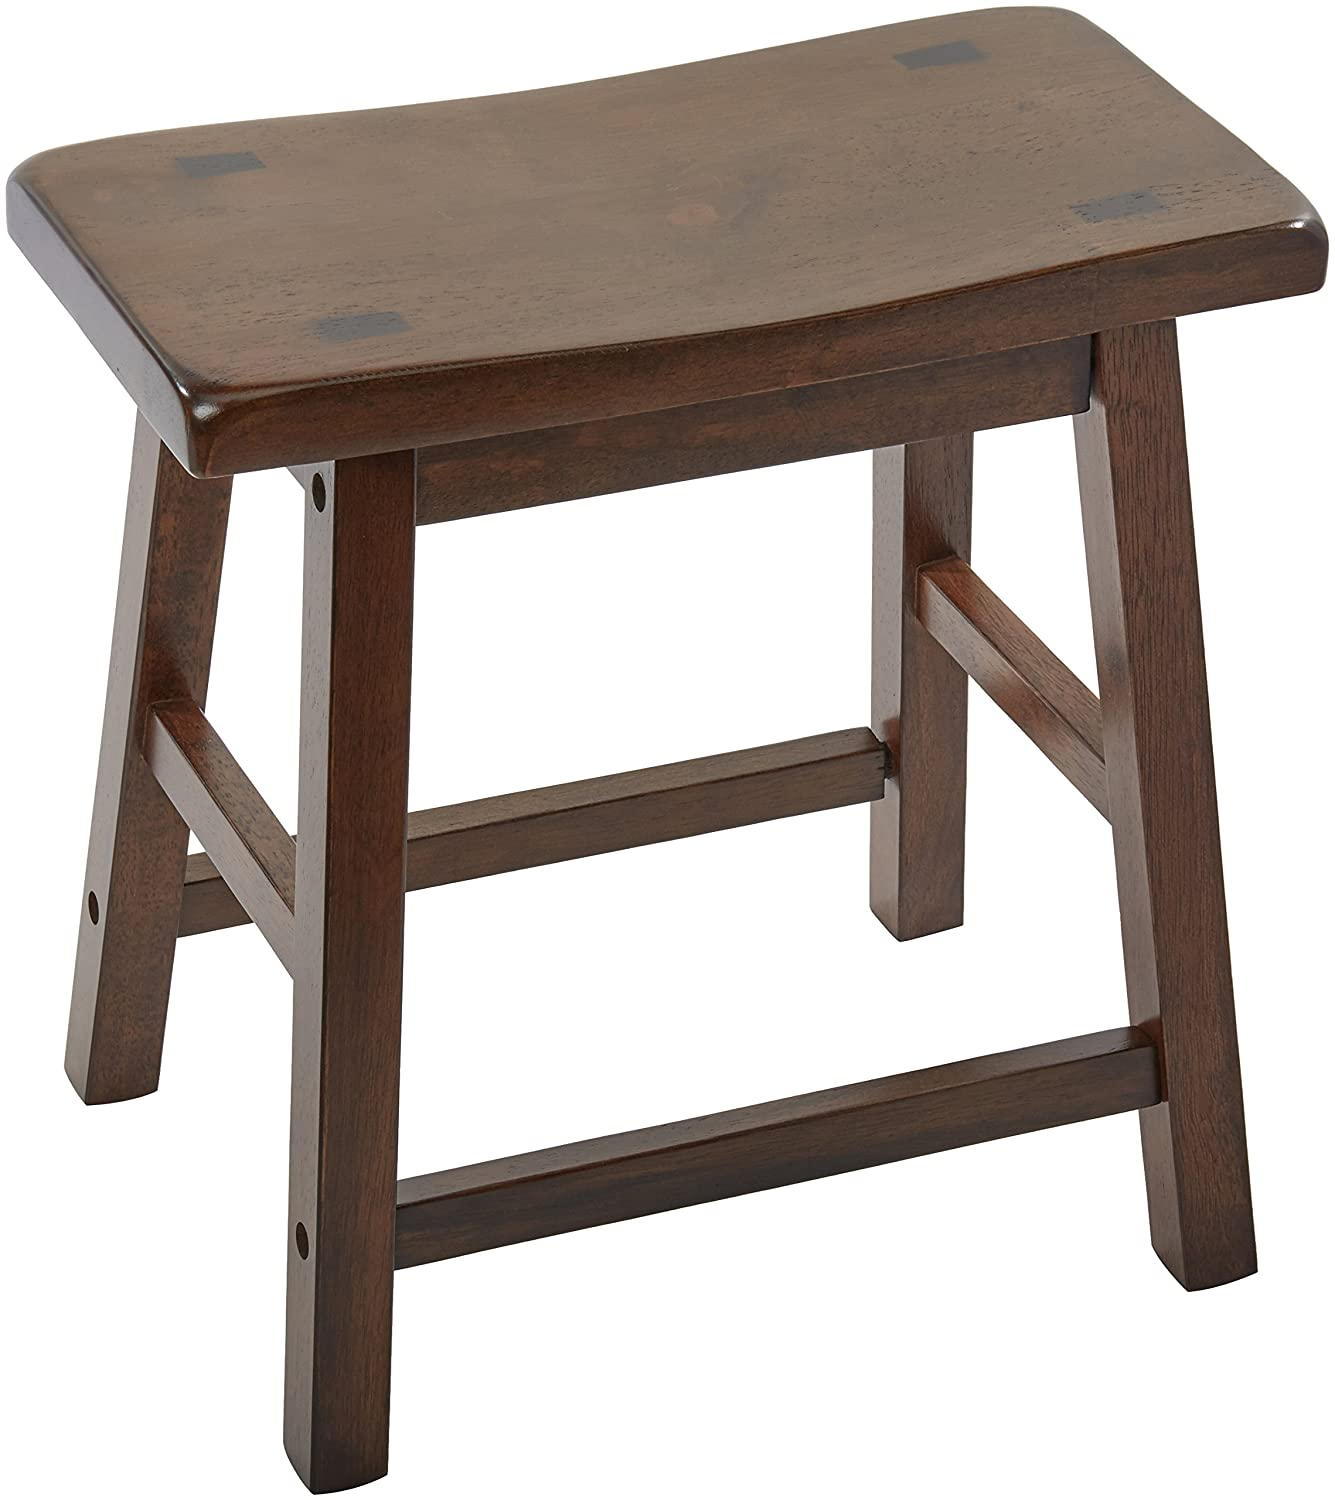 ACME 07303 Set of 2 Gaucho Stool, 18-Inch, Walnut Finish. ACME Furniture